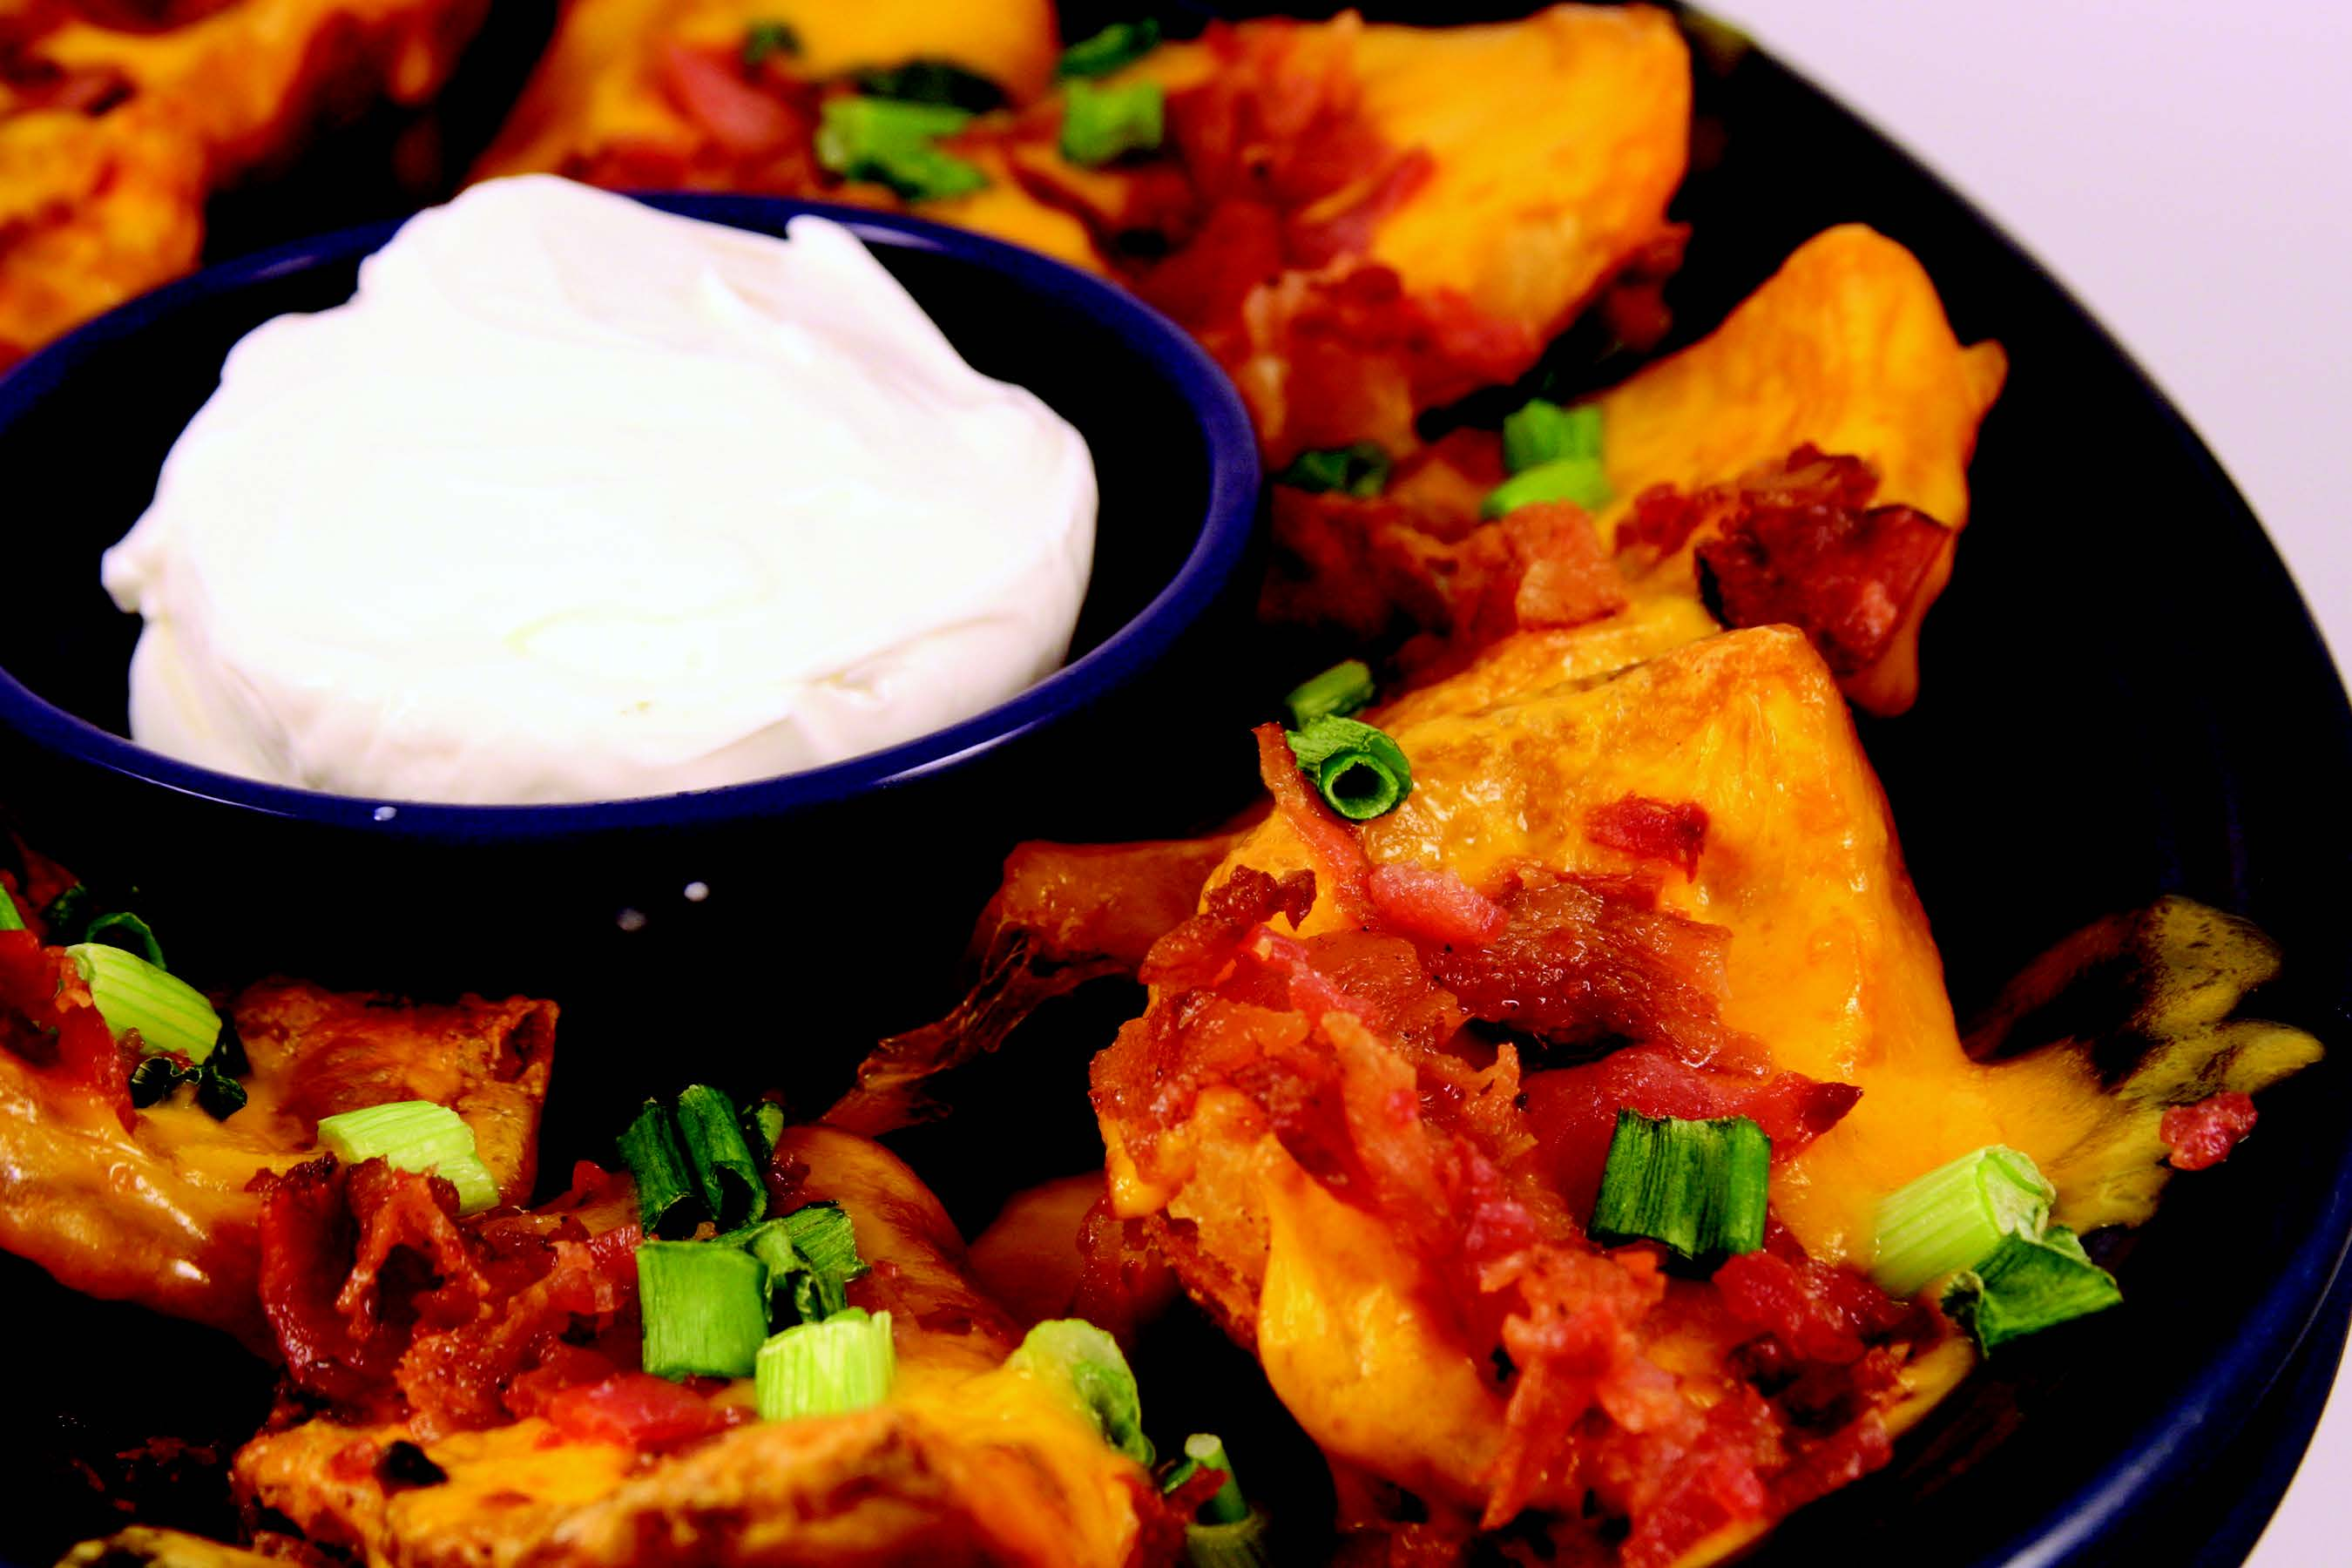 Our Signature Nachos